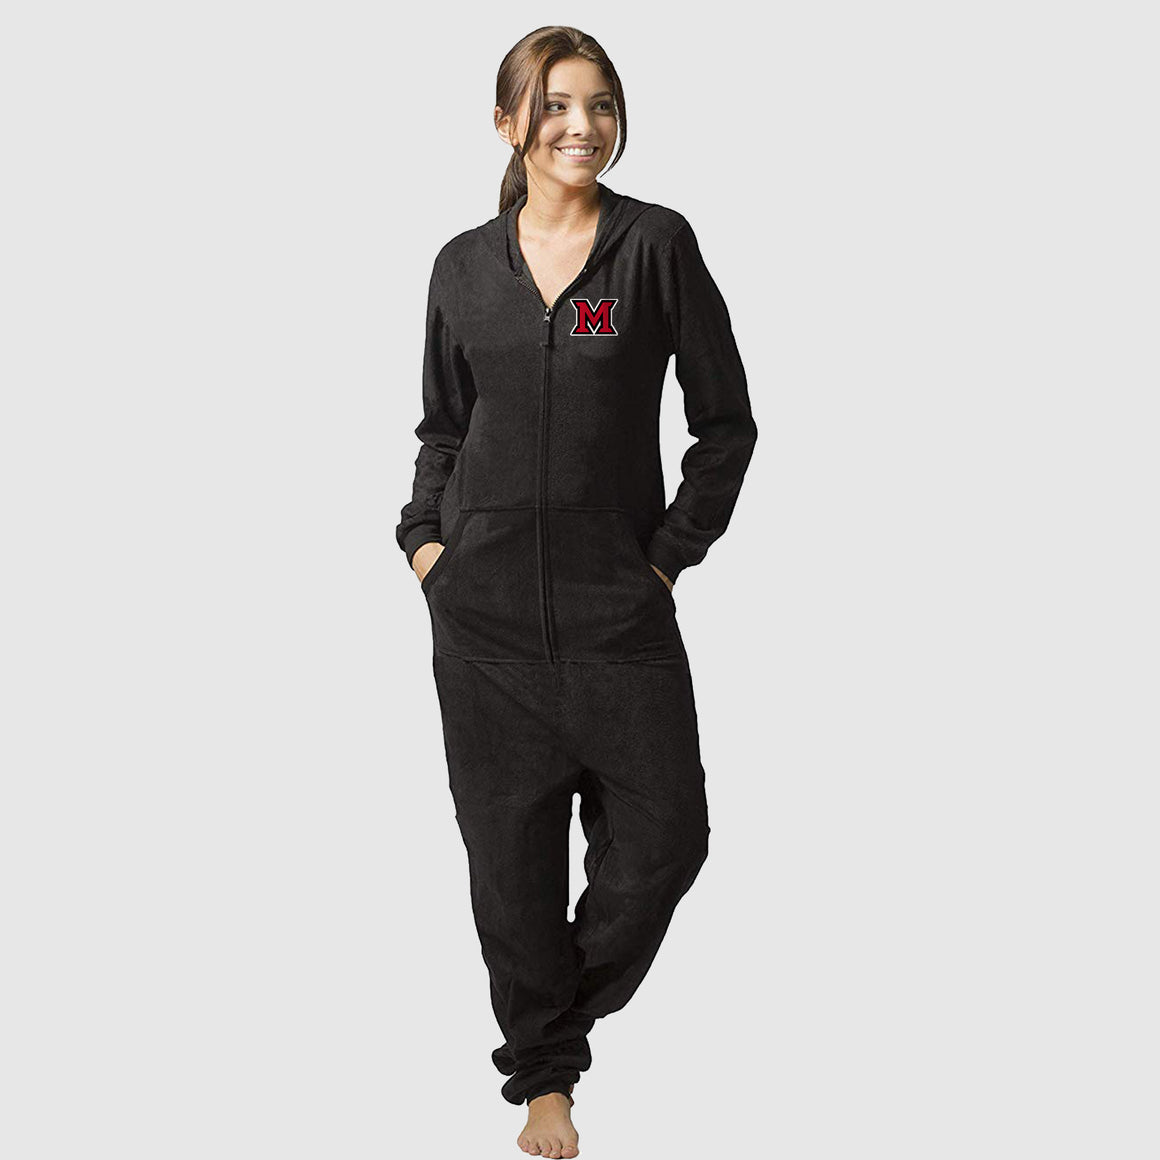 "Miami ""M"" University Adult Fleece Hooded Pajama Zip-Up Onesie - Cincy Shirts"